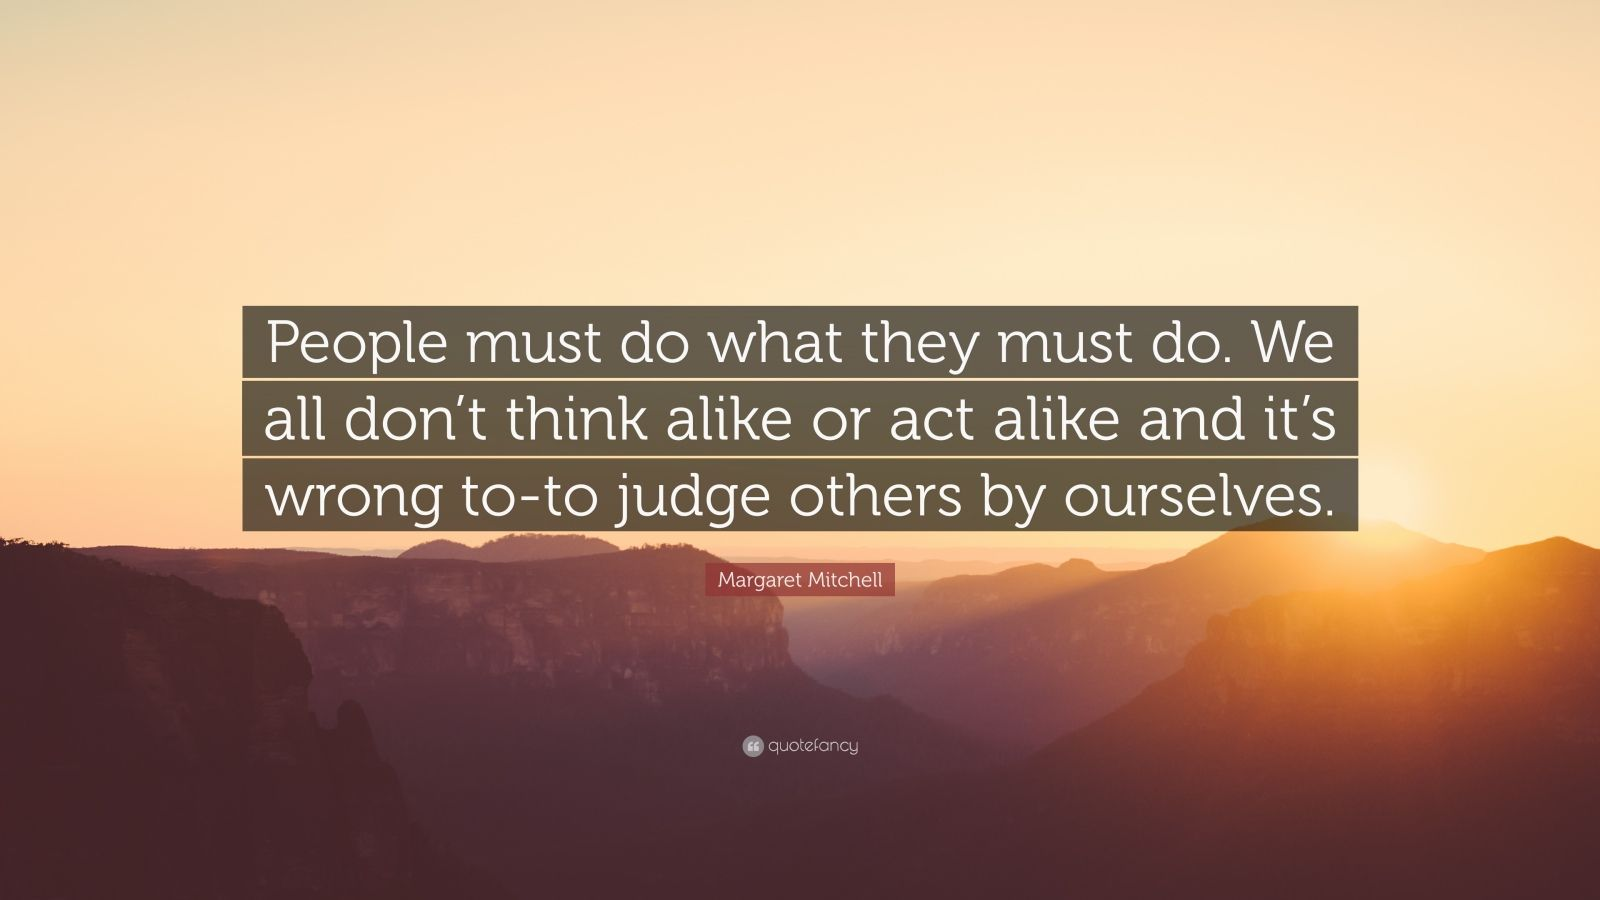 """Margaret Mitchell Quote: """"People must do what they must do. We all don't think alike or act alike and it's wrong to-to judge others by ourselves."""""""